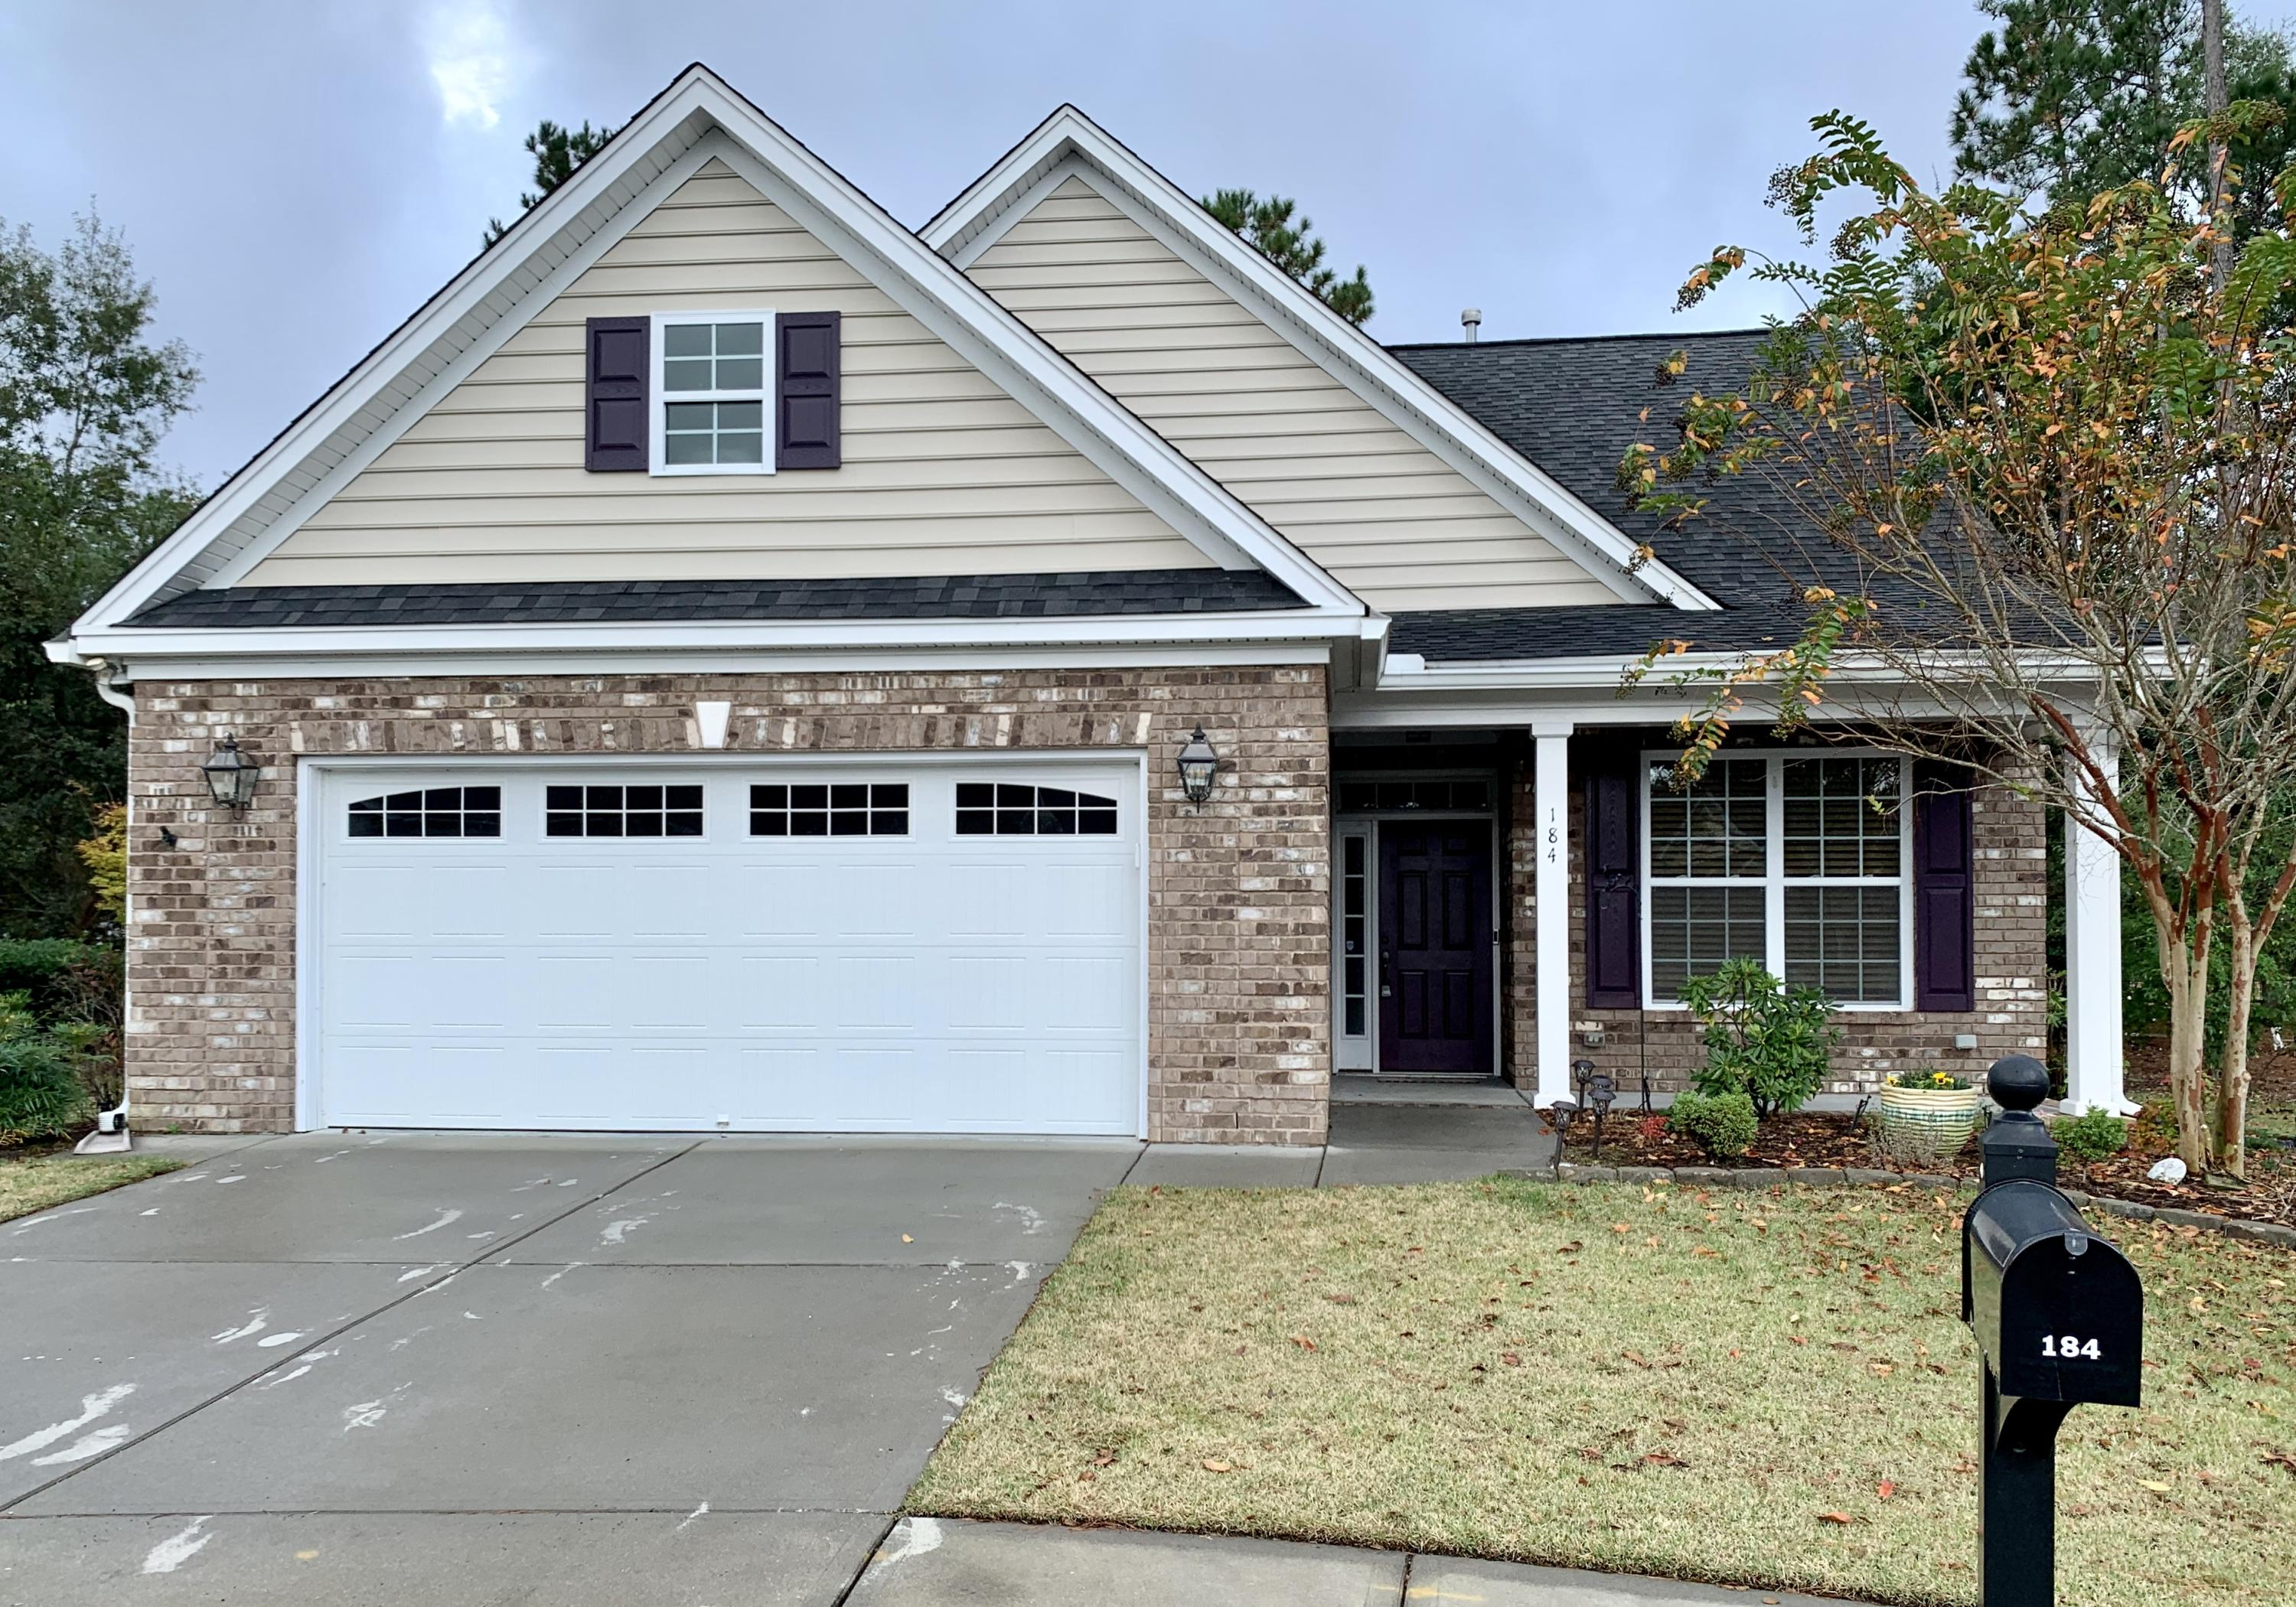 184 Angora Way Summerville, SC 29485